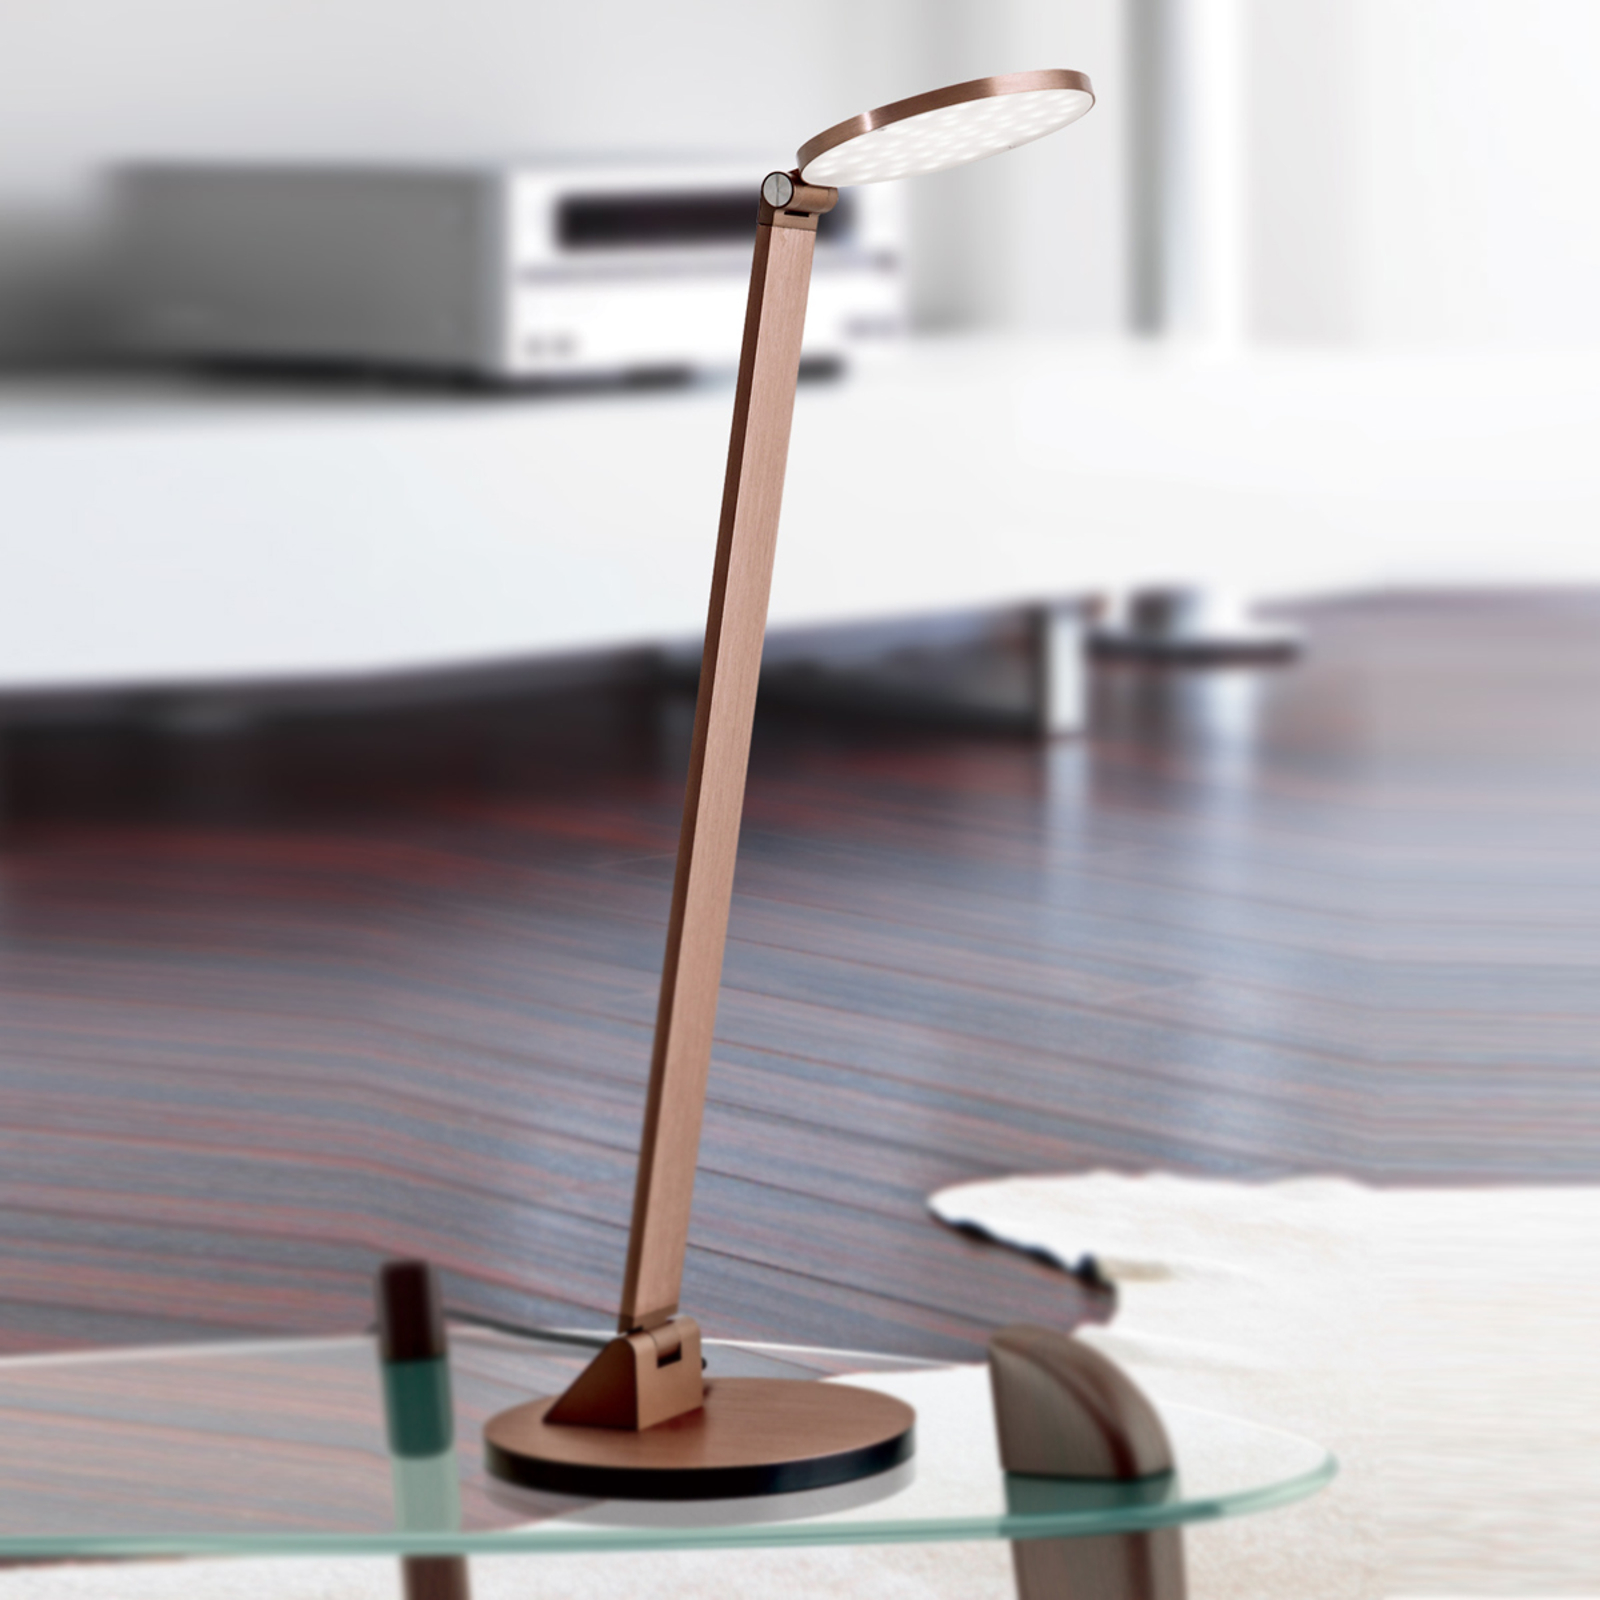 Lampe à poser LED Ayana, tête ronde, dimmable